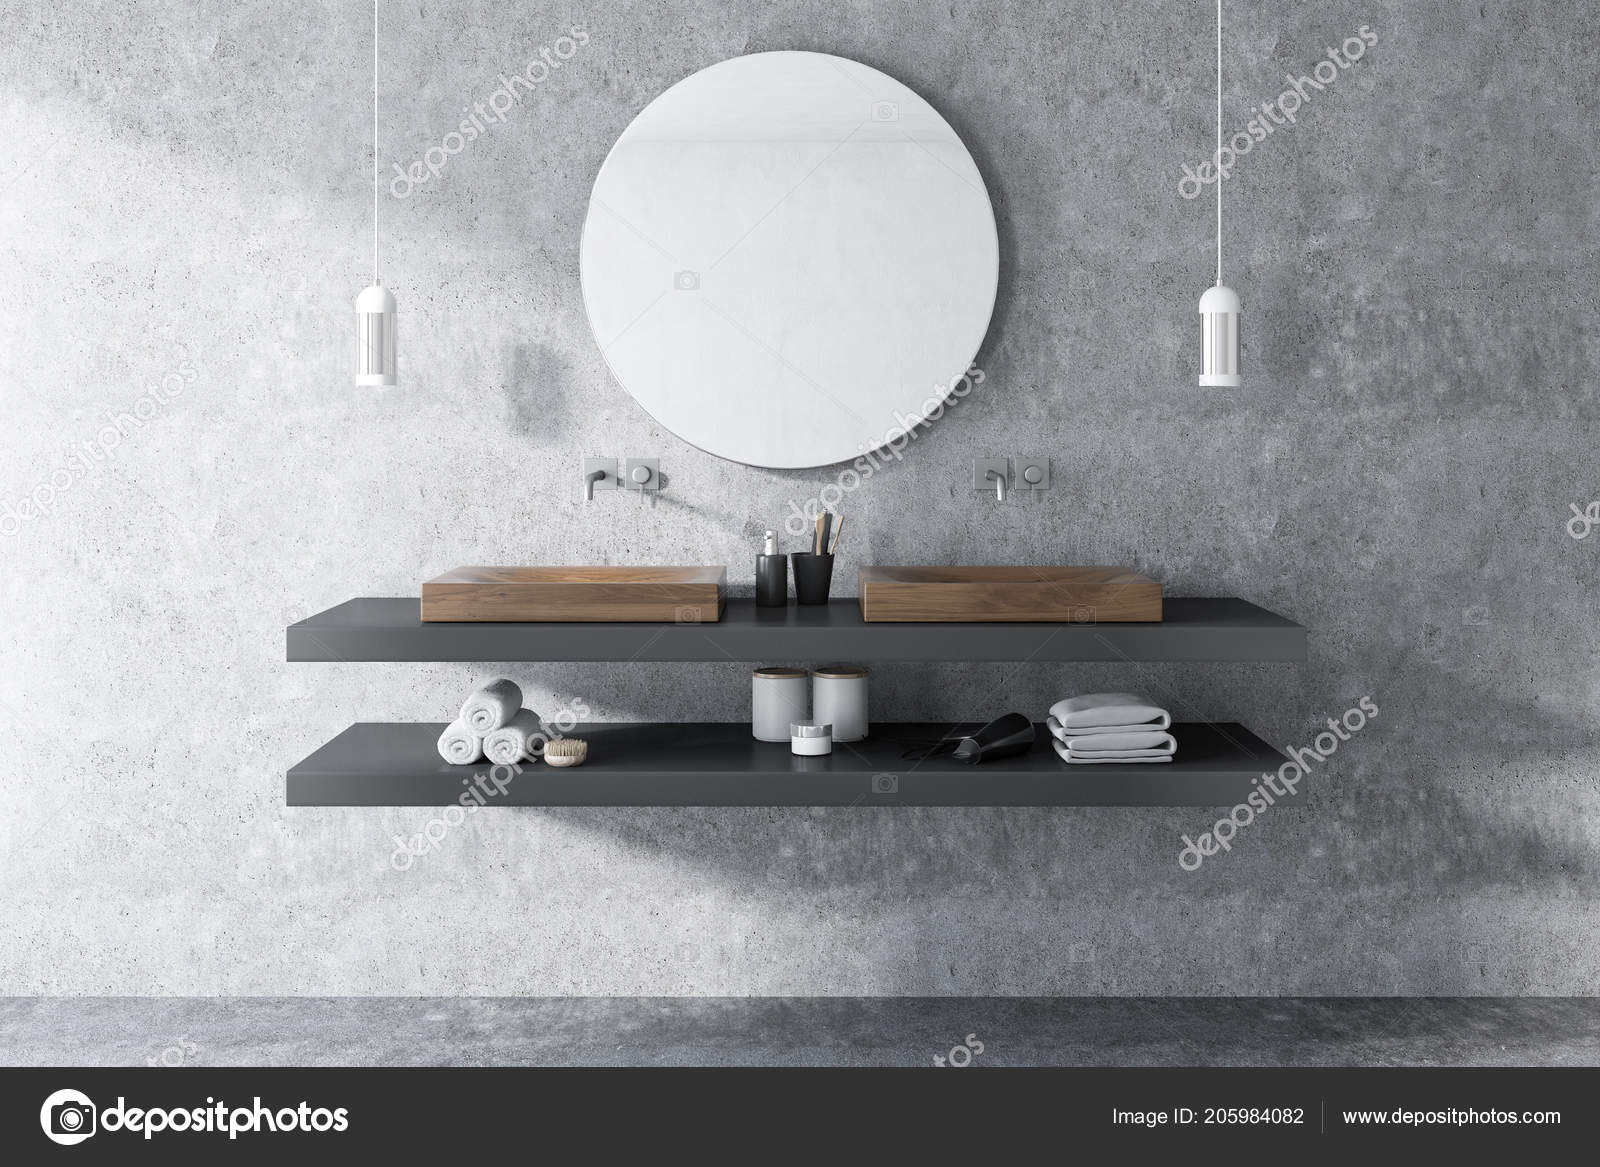 https depositphotos com 205984082 stock photo front view wooden double sink html